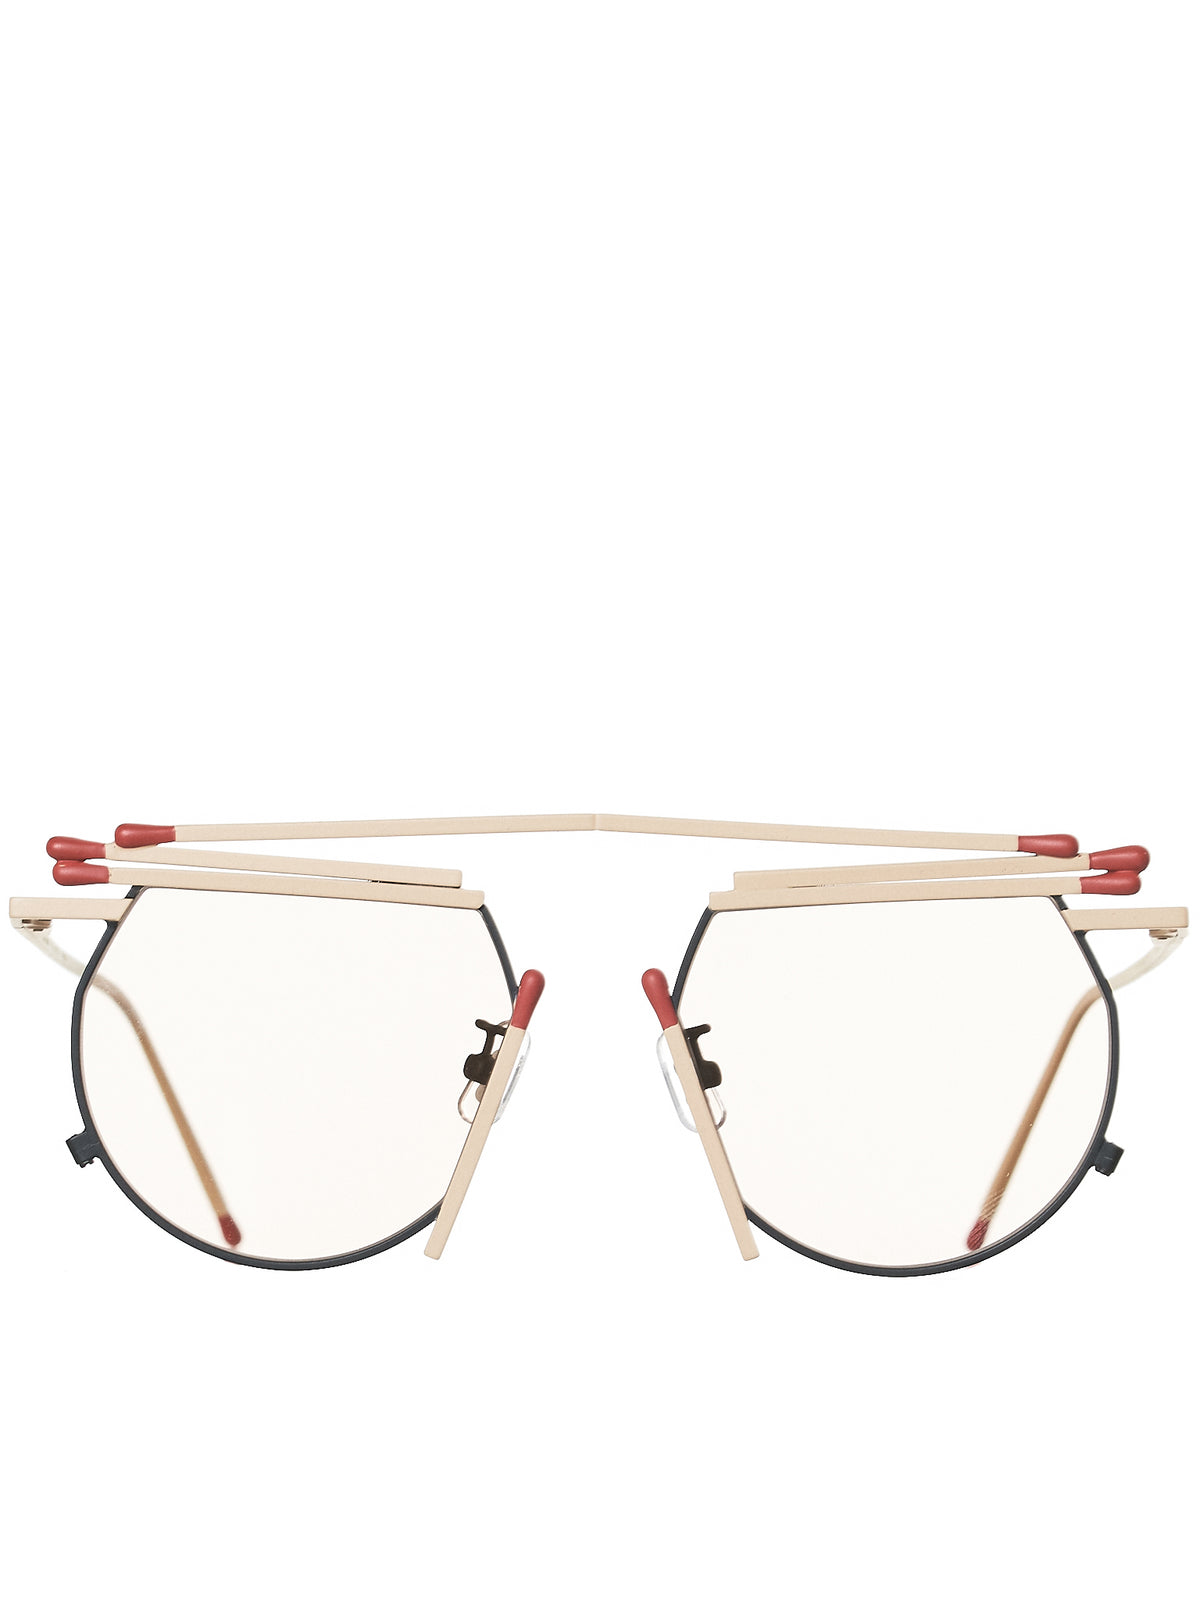 Matches Sunglasses (S901-2-MATCH-BEIGE-RED)